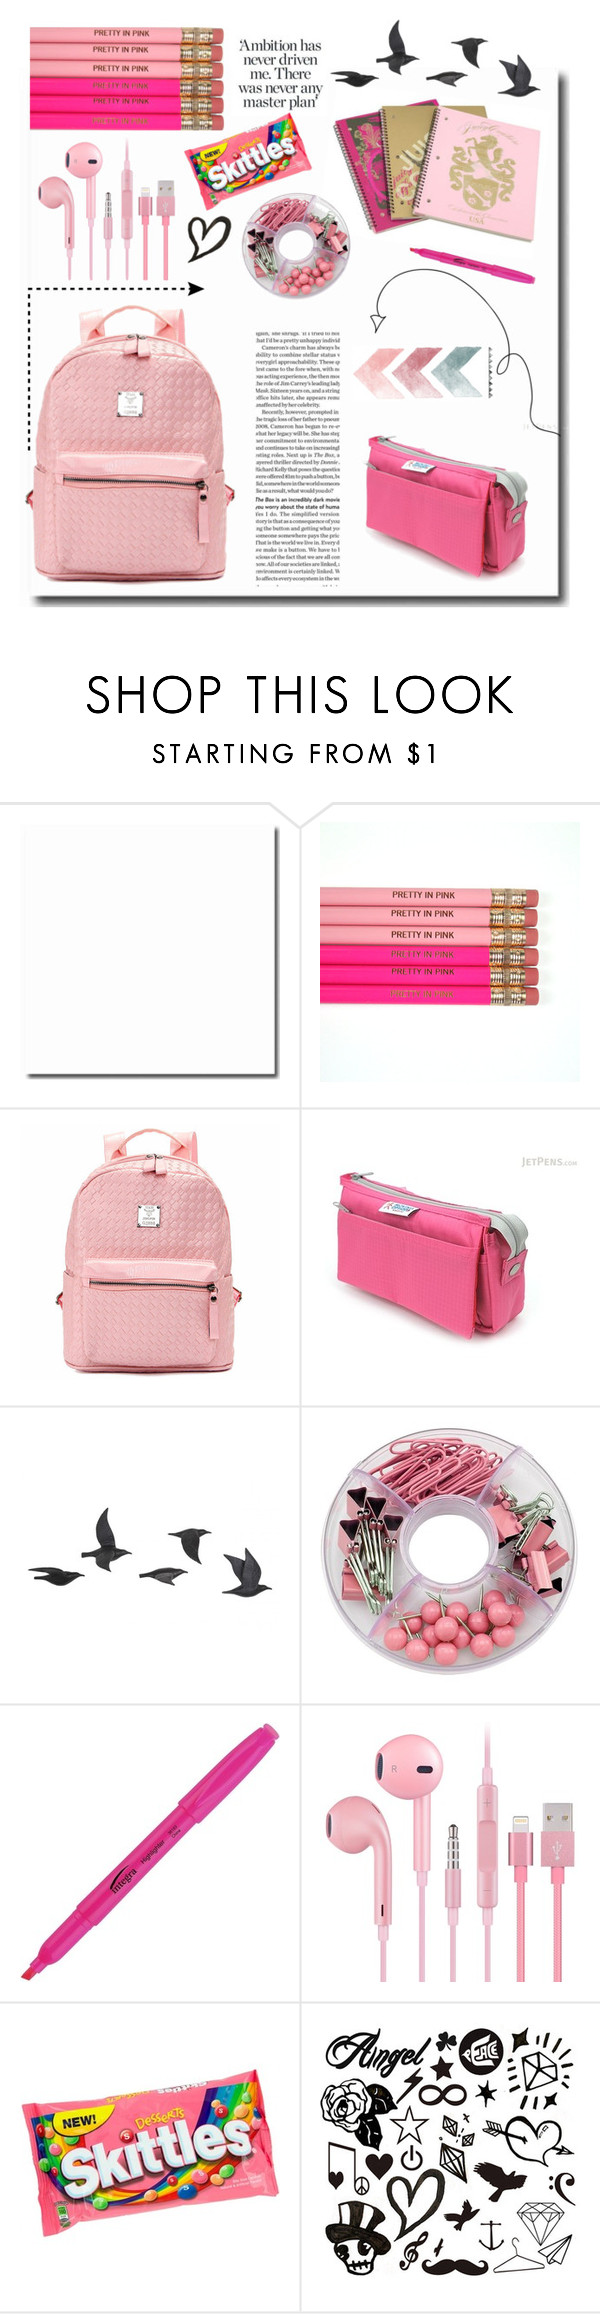 """""""Untitled #38"""" by emmalochaden ❤ liked on Polyvore featuring Juicy Couture, Jayson Home, backpacks, contestentry and PVStyleInsiderContest"""